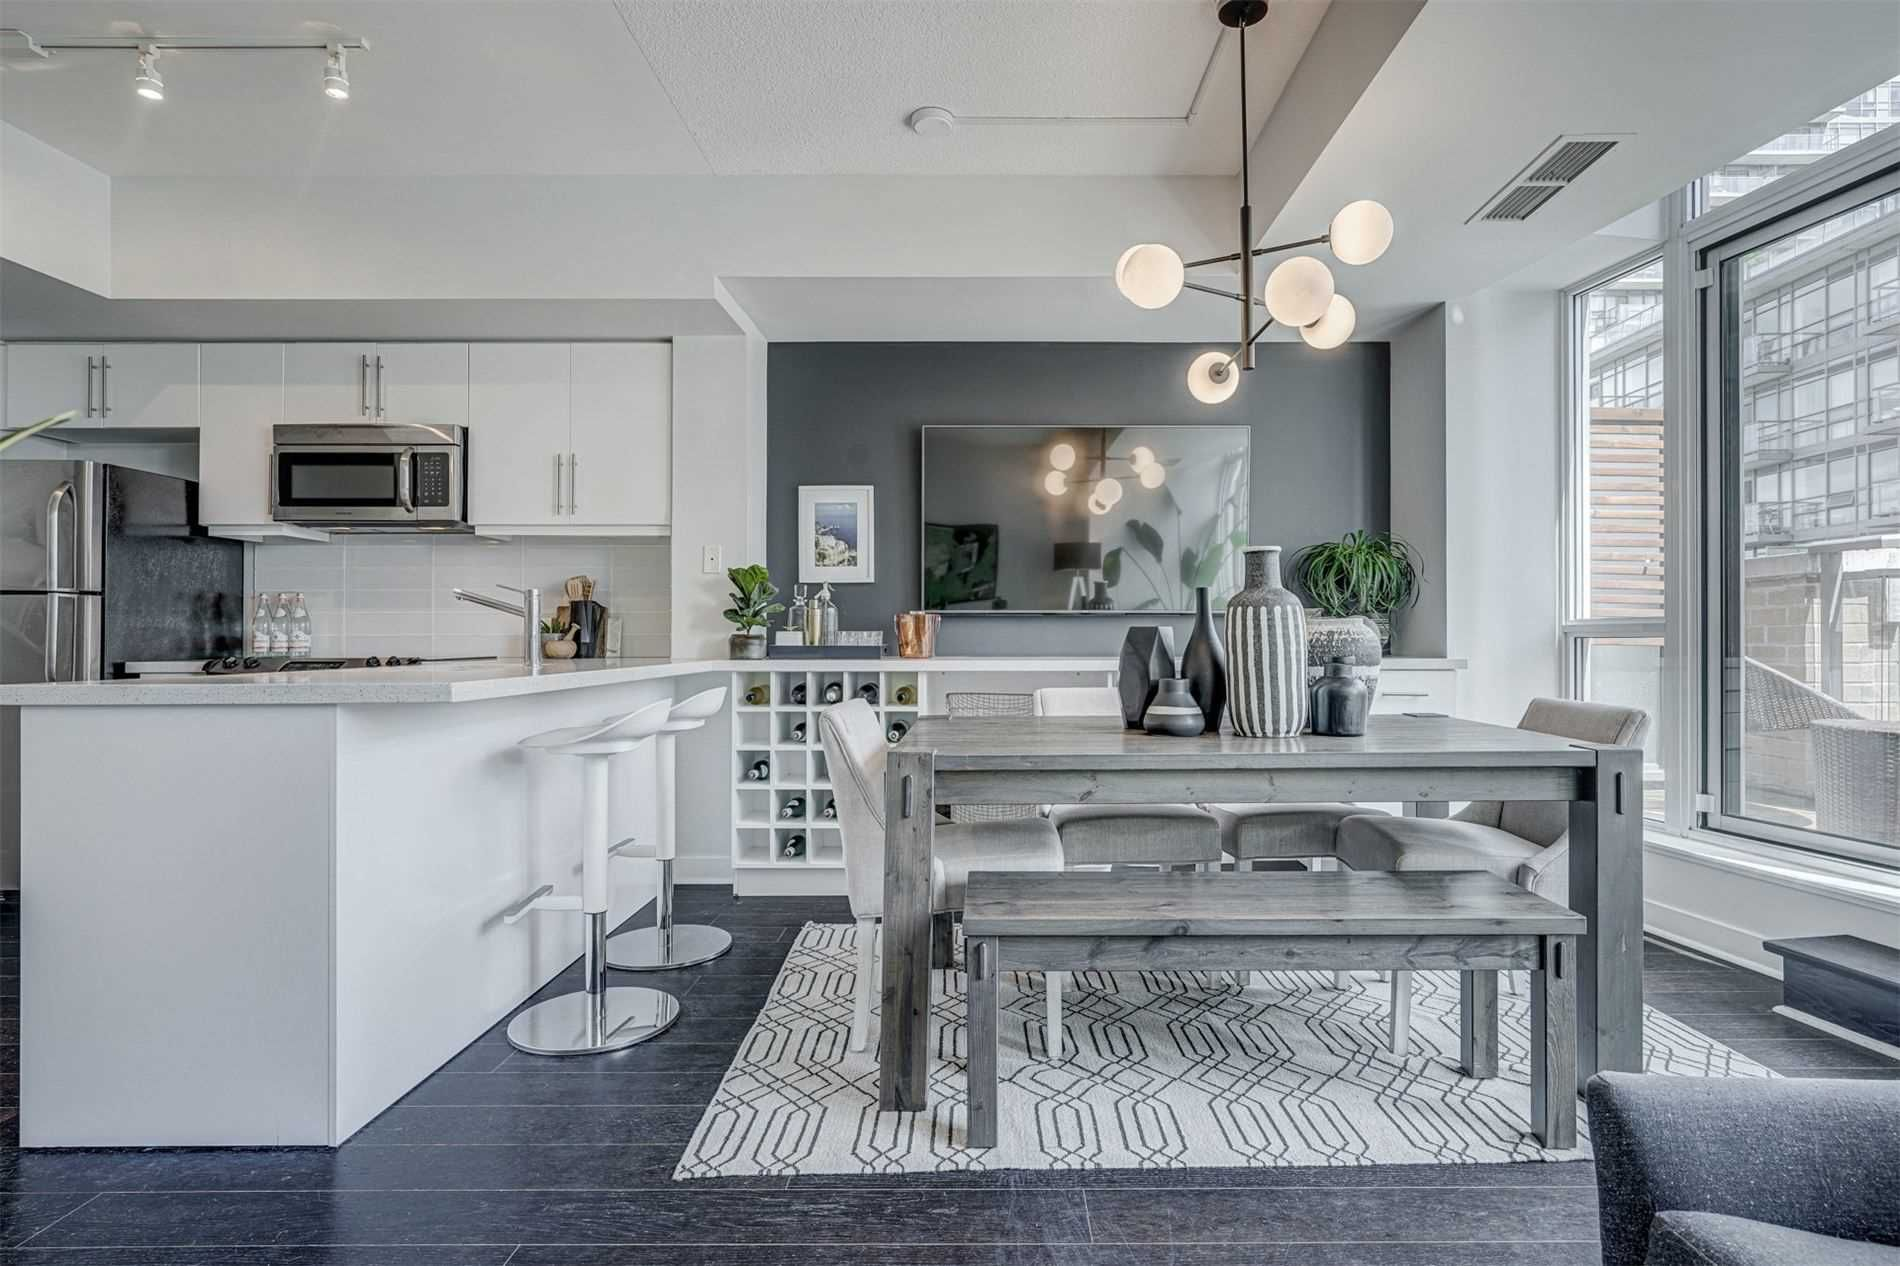 1169 Queen St W, unit Ph 720 for sale in Little Portugal - image #1